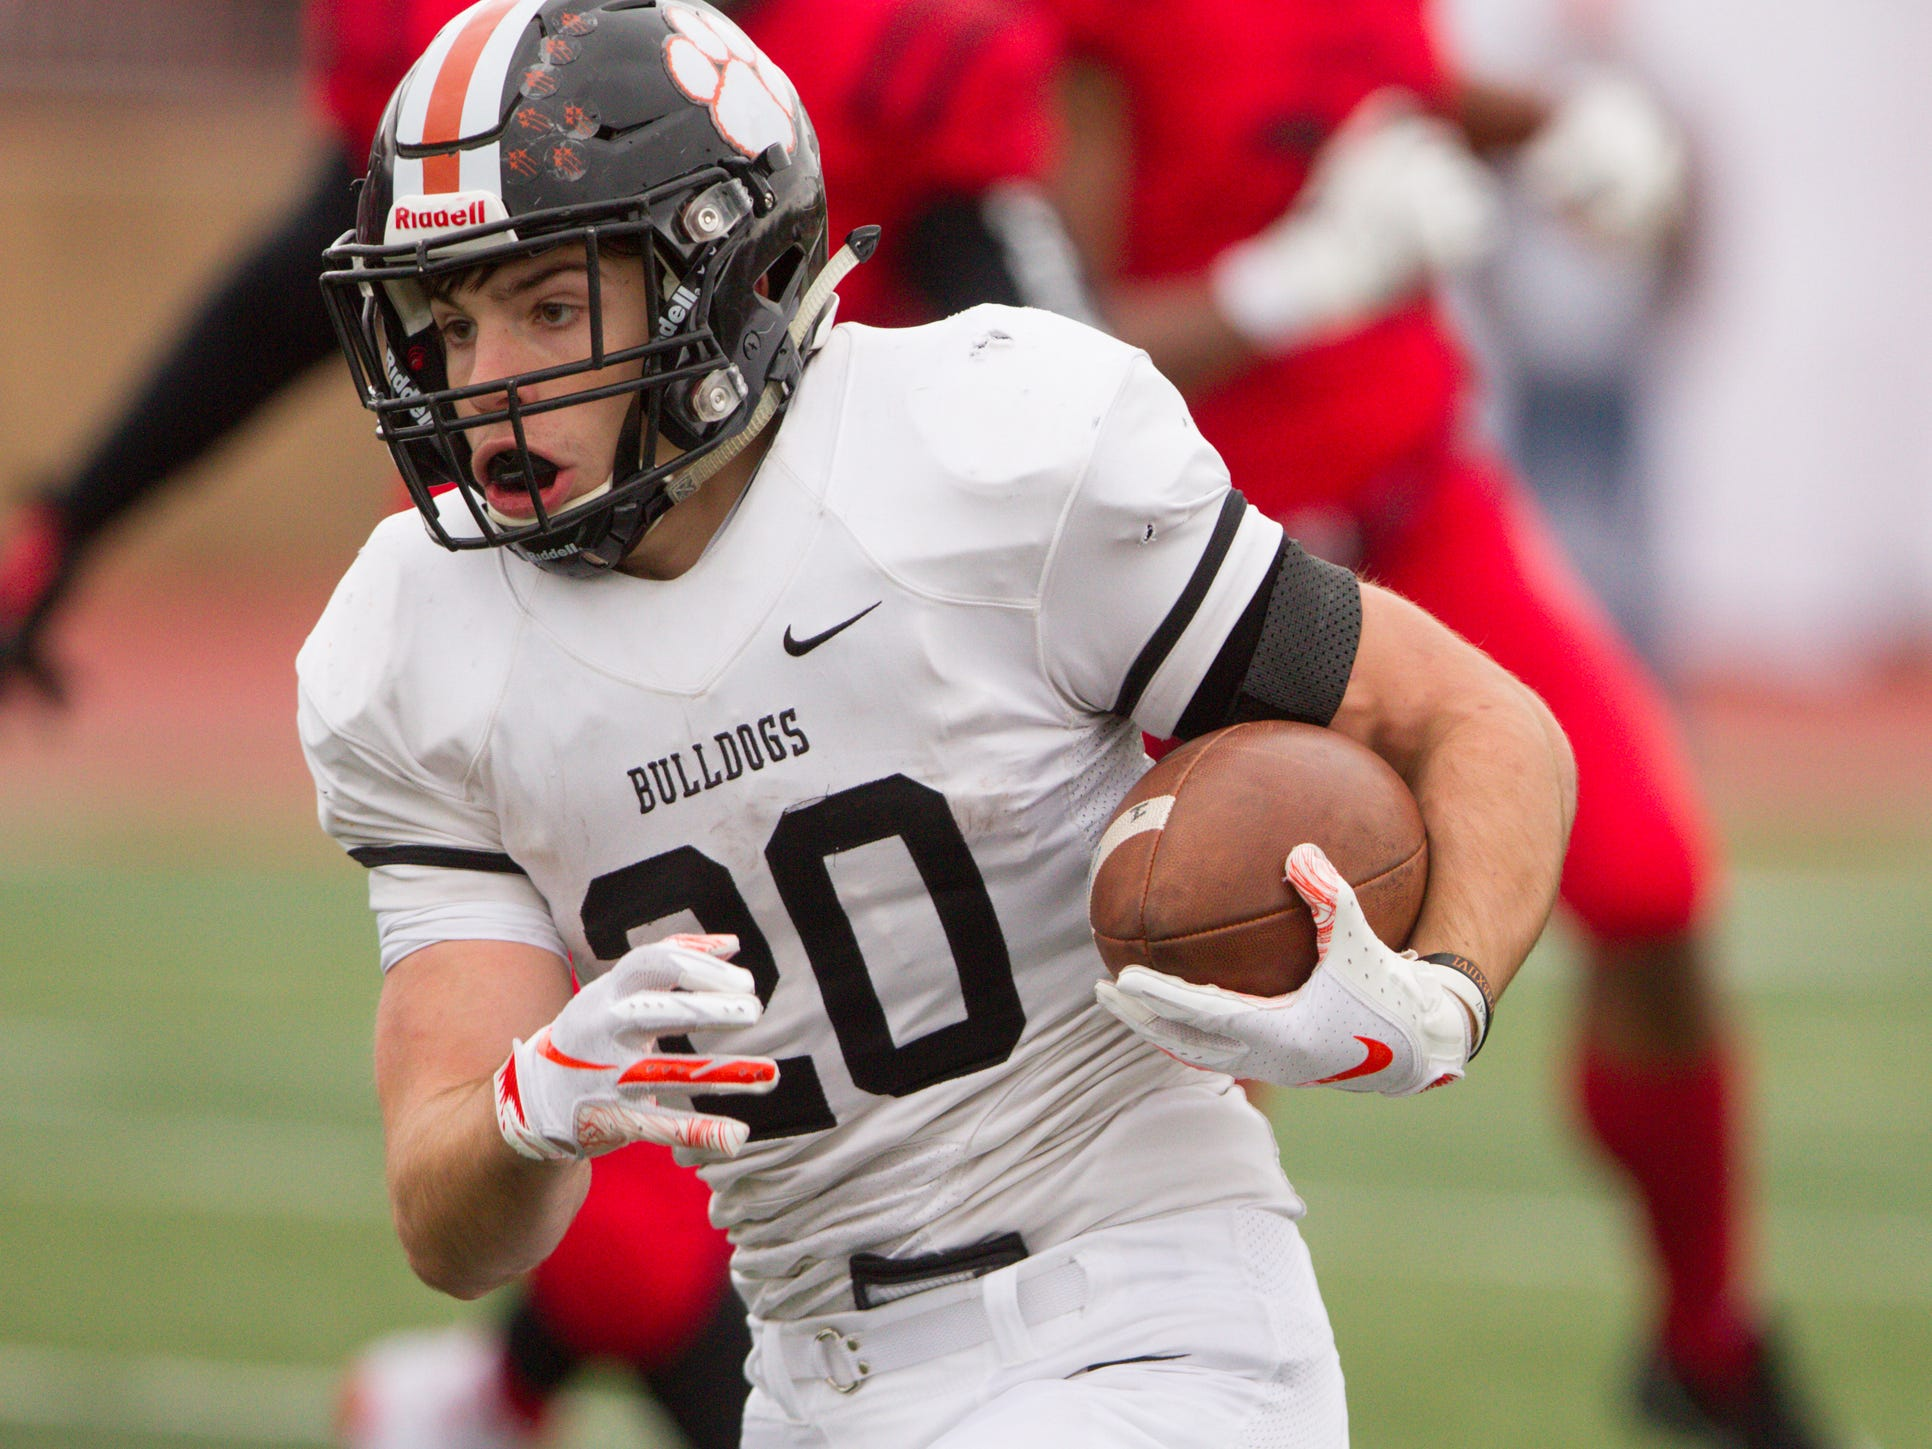 Brighton's Chris Seguin carries the ball in the playoff game against East Kentwood Saturday, Oct. 27, 2018.